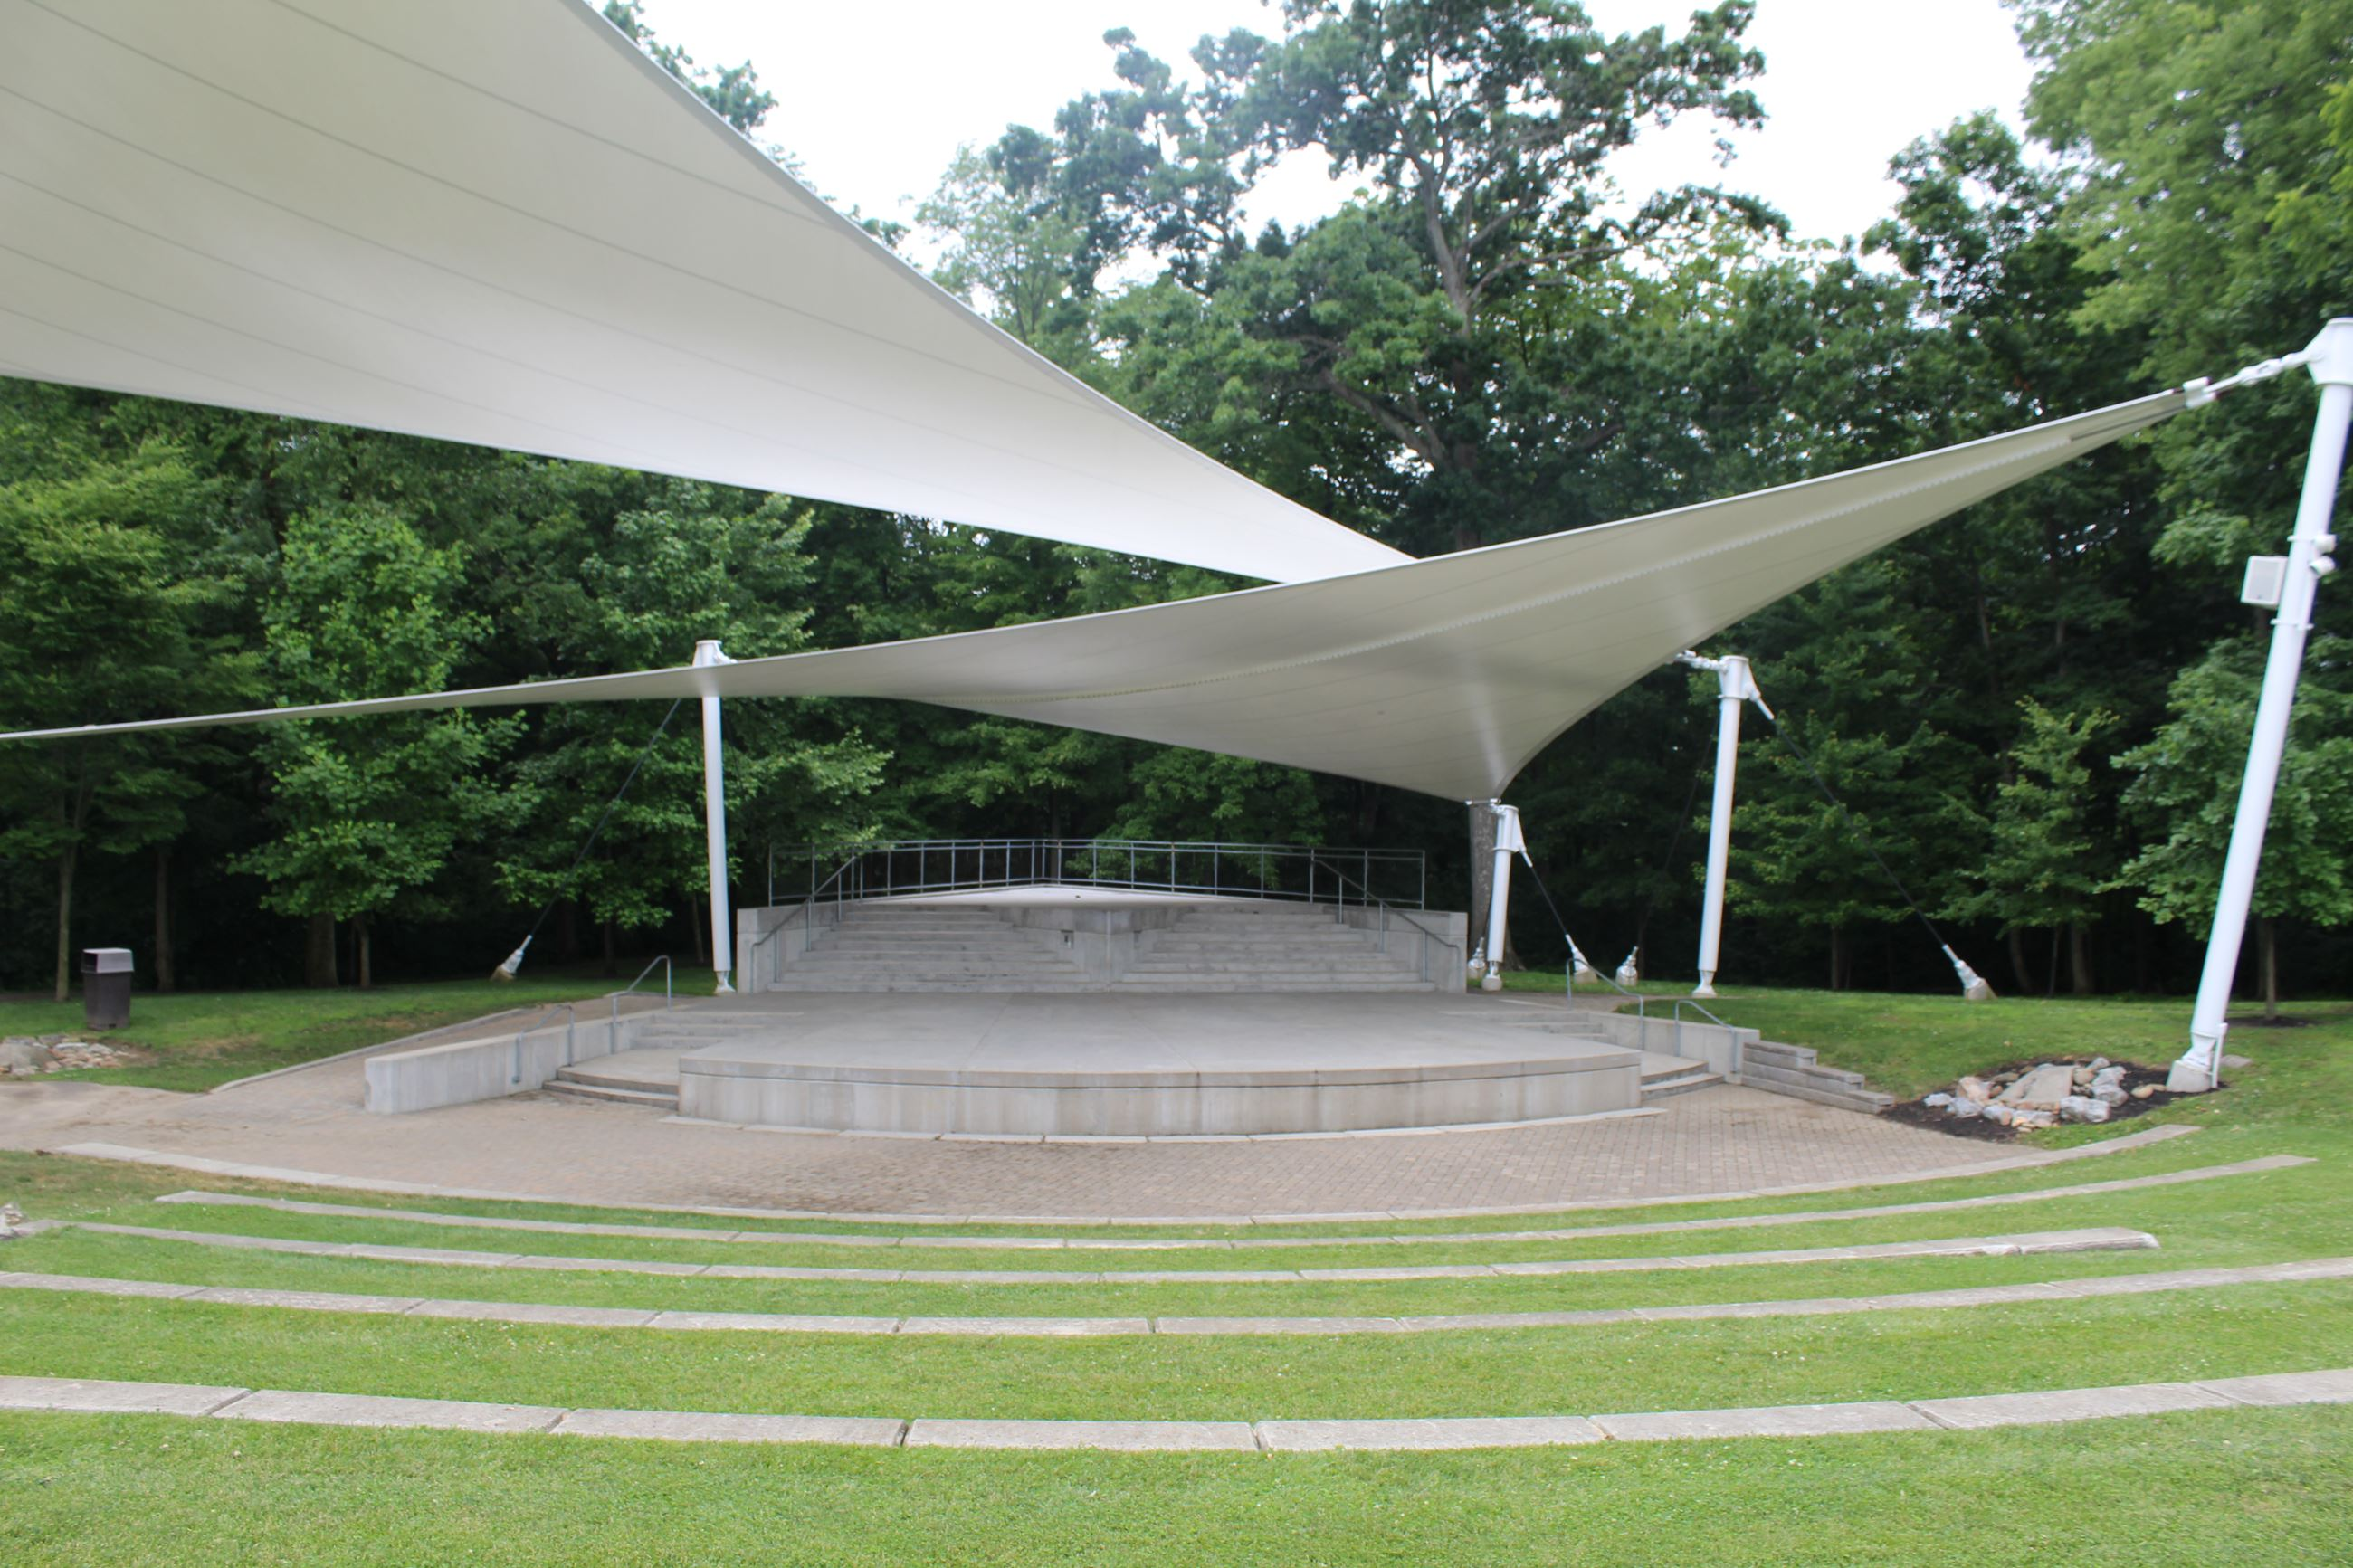 North Park Amphitheater